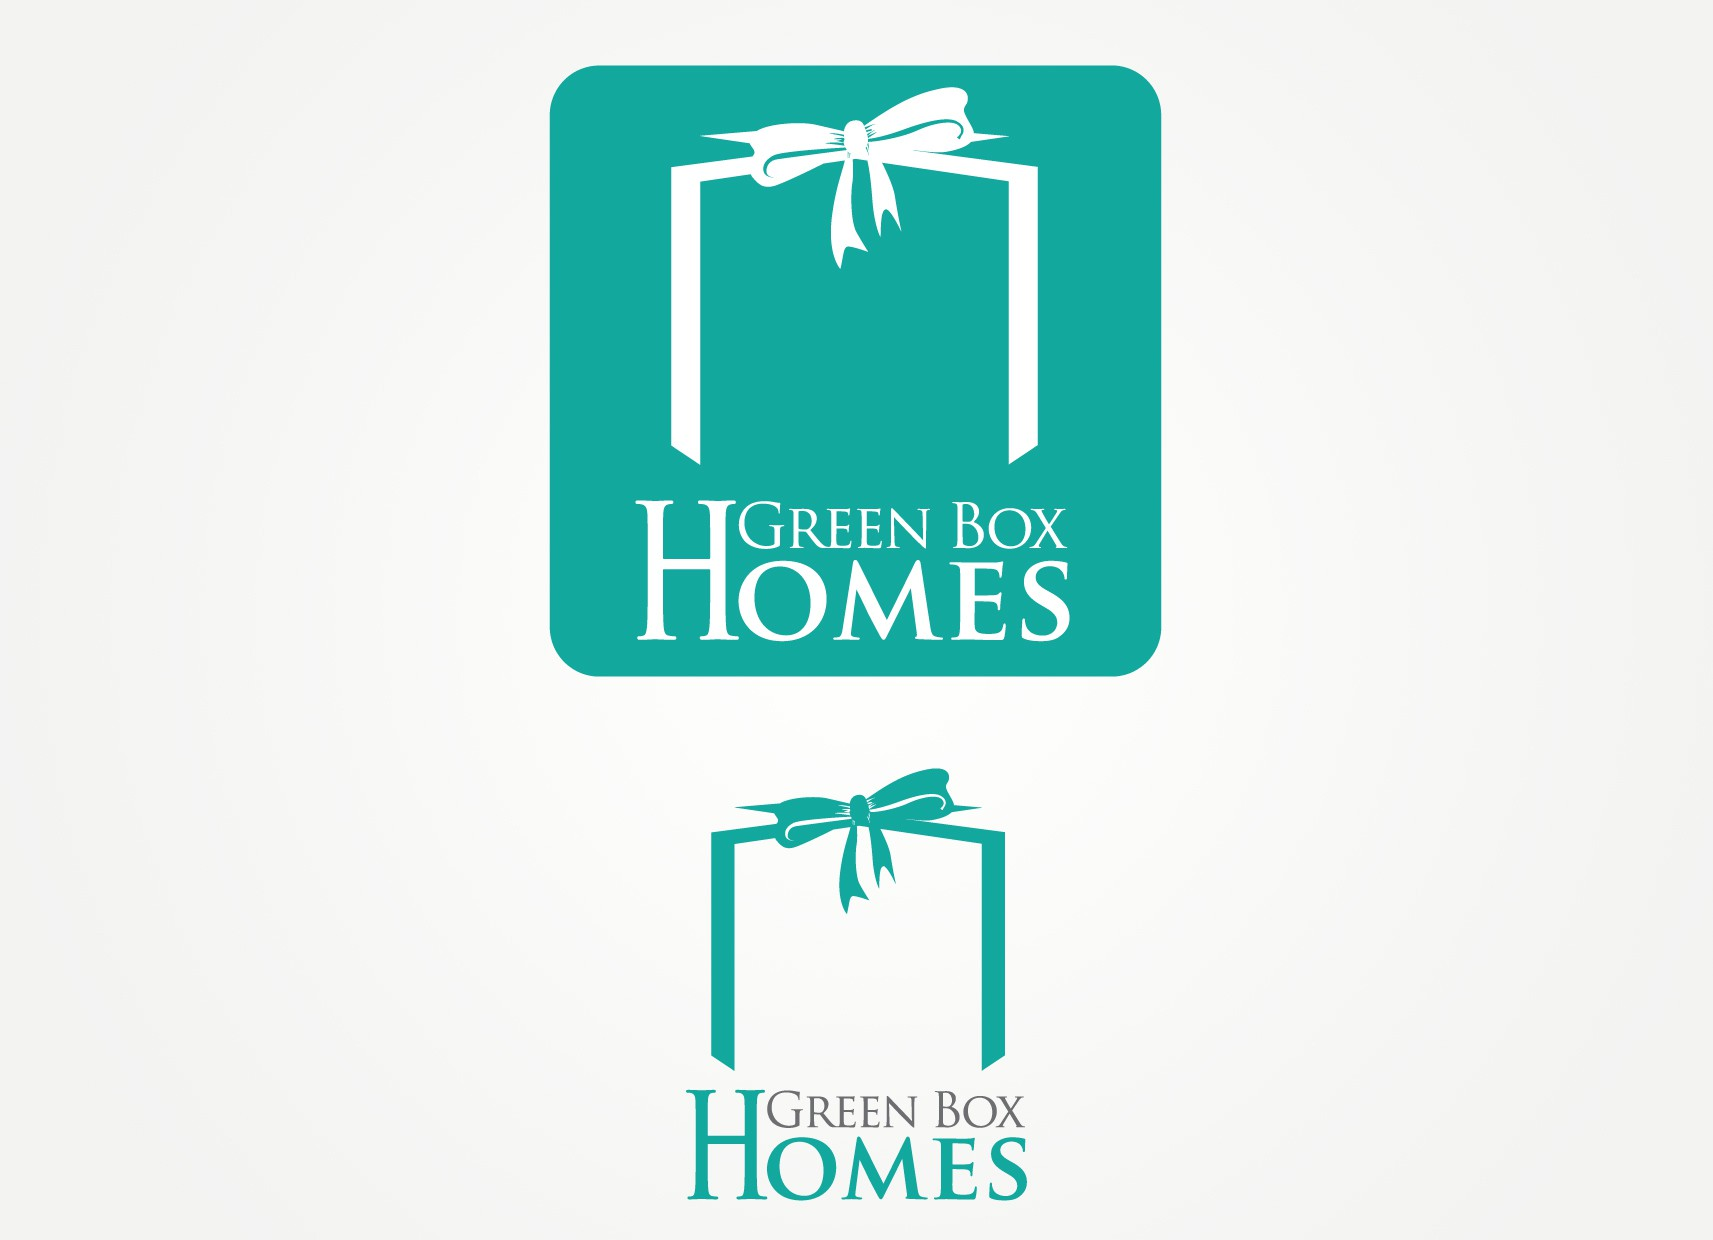 New logo wanted for GreenBoxHomes.com